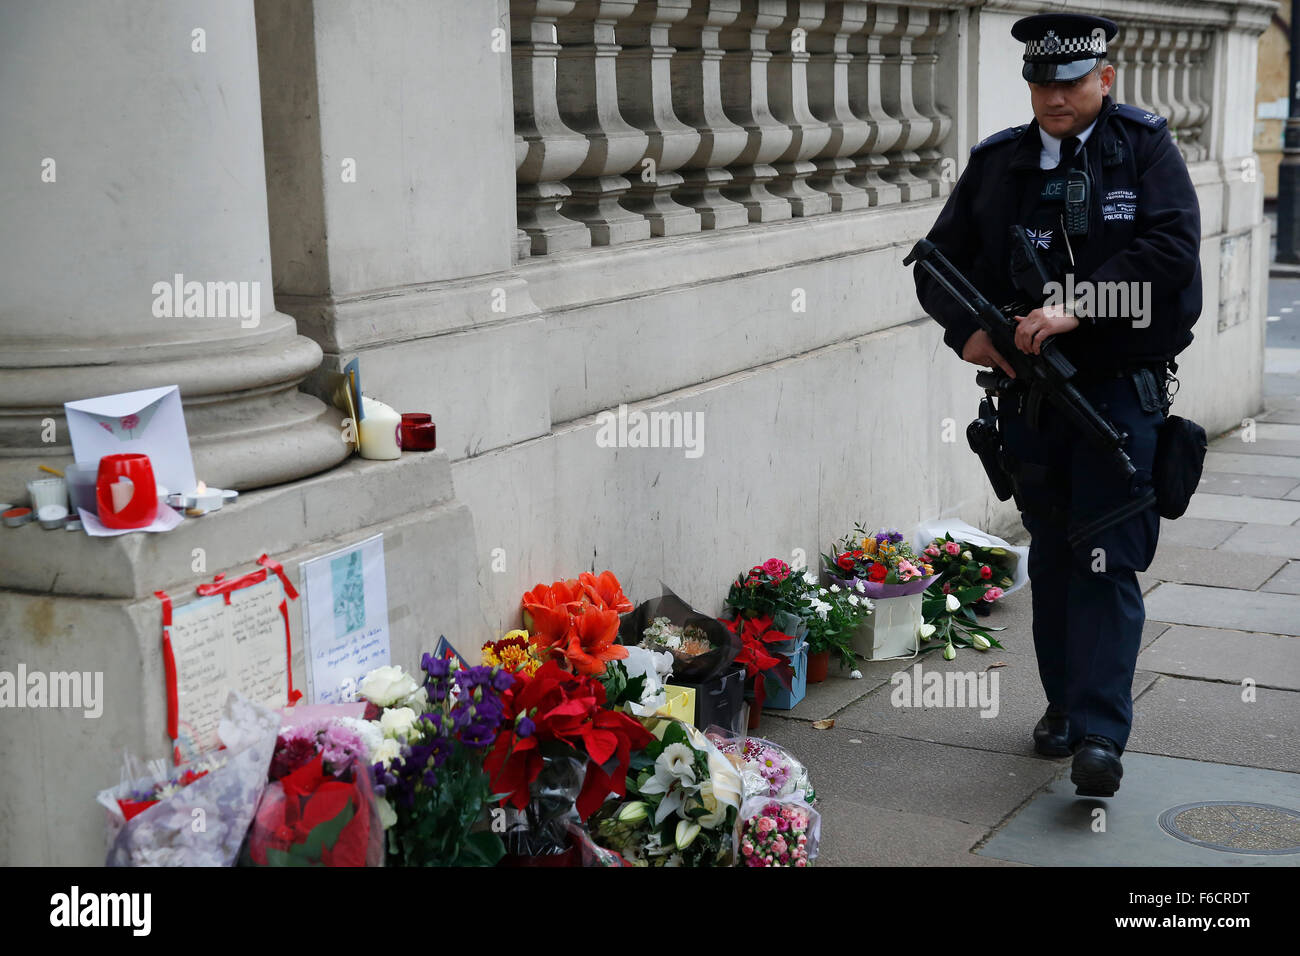 London, UK. 16th Nov, 2015. An armed police officer patrols near flowers, laid for the dead after the shooting in Stock Photo